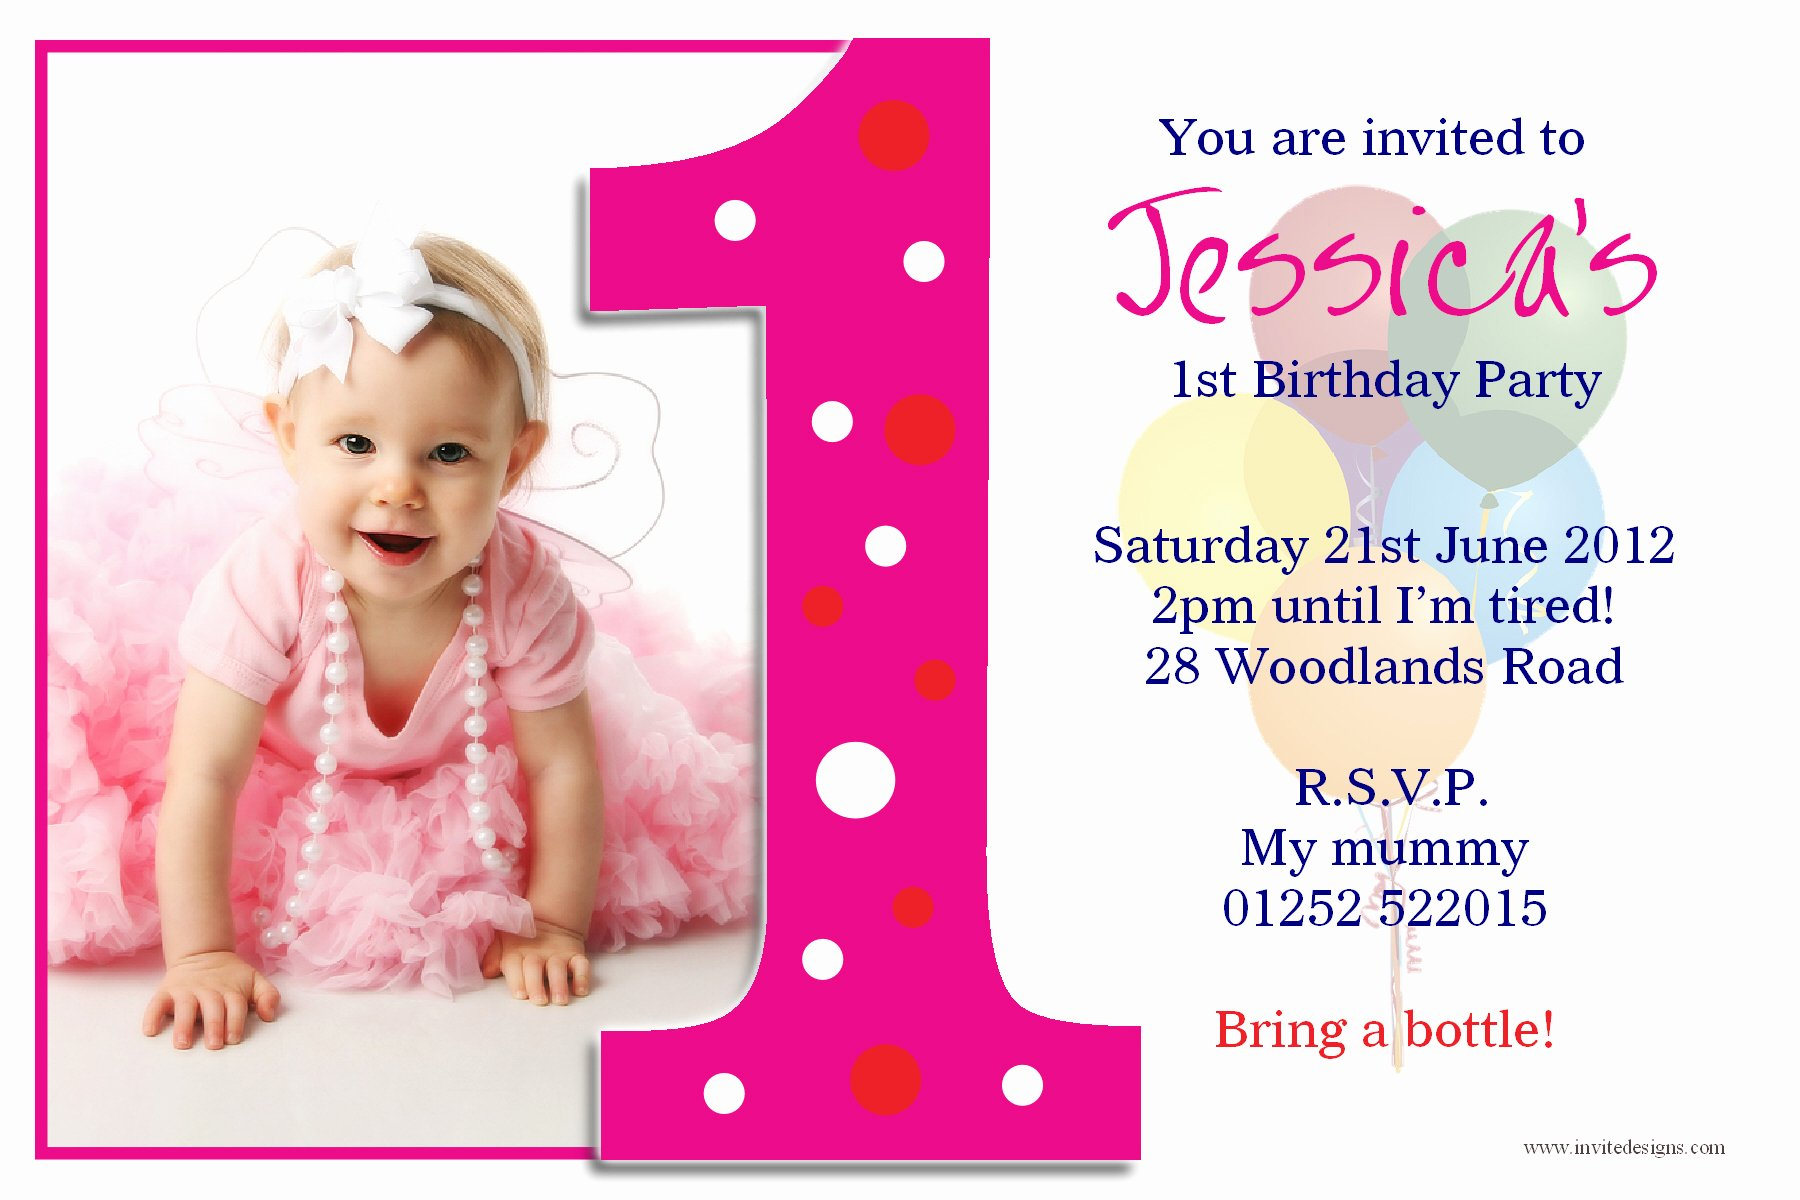 1st Birthday Invitation Template Elegant Birthday Invitations 1st Birthday Invitations Girl Free